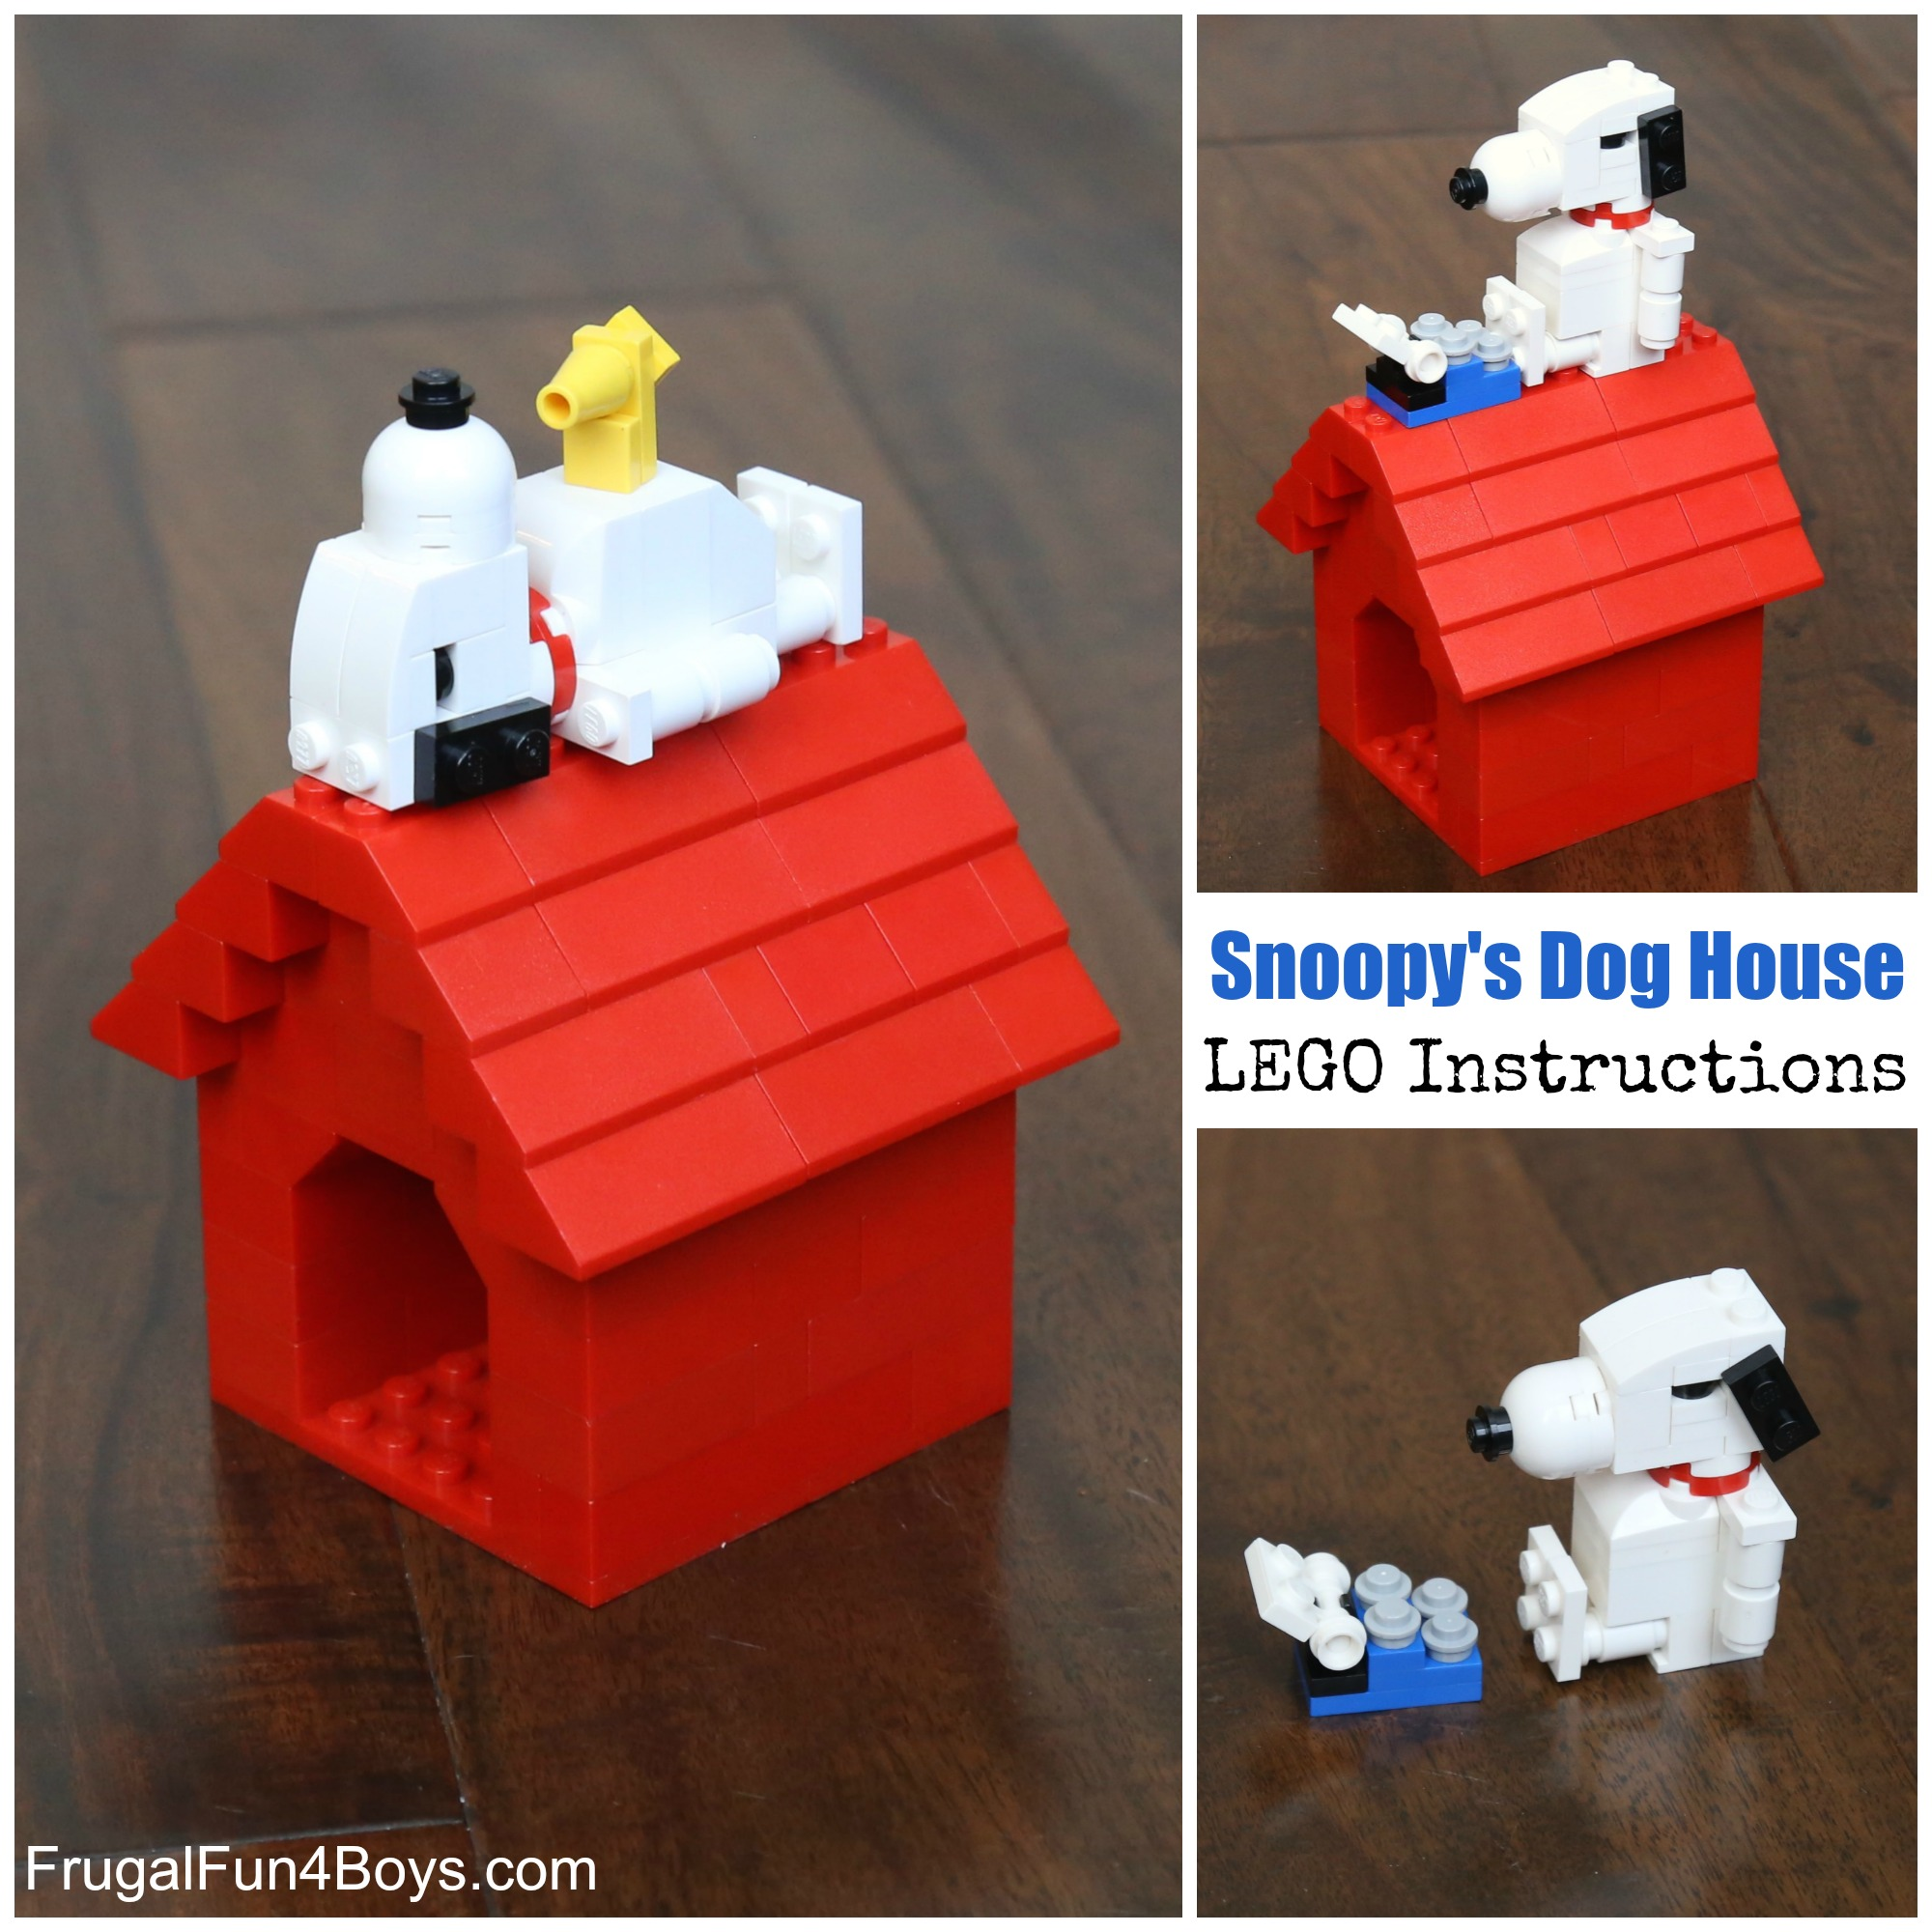 Snoopy And His Dog House Lego Building Instructions Frugal Fun For